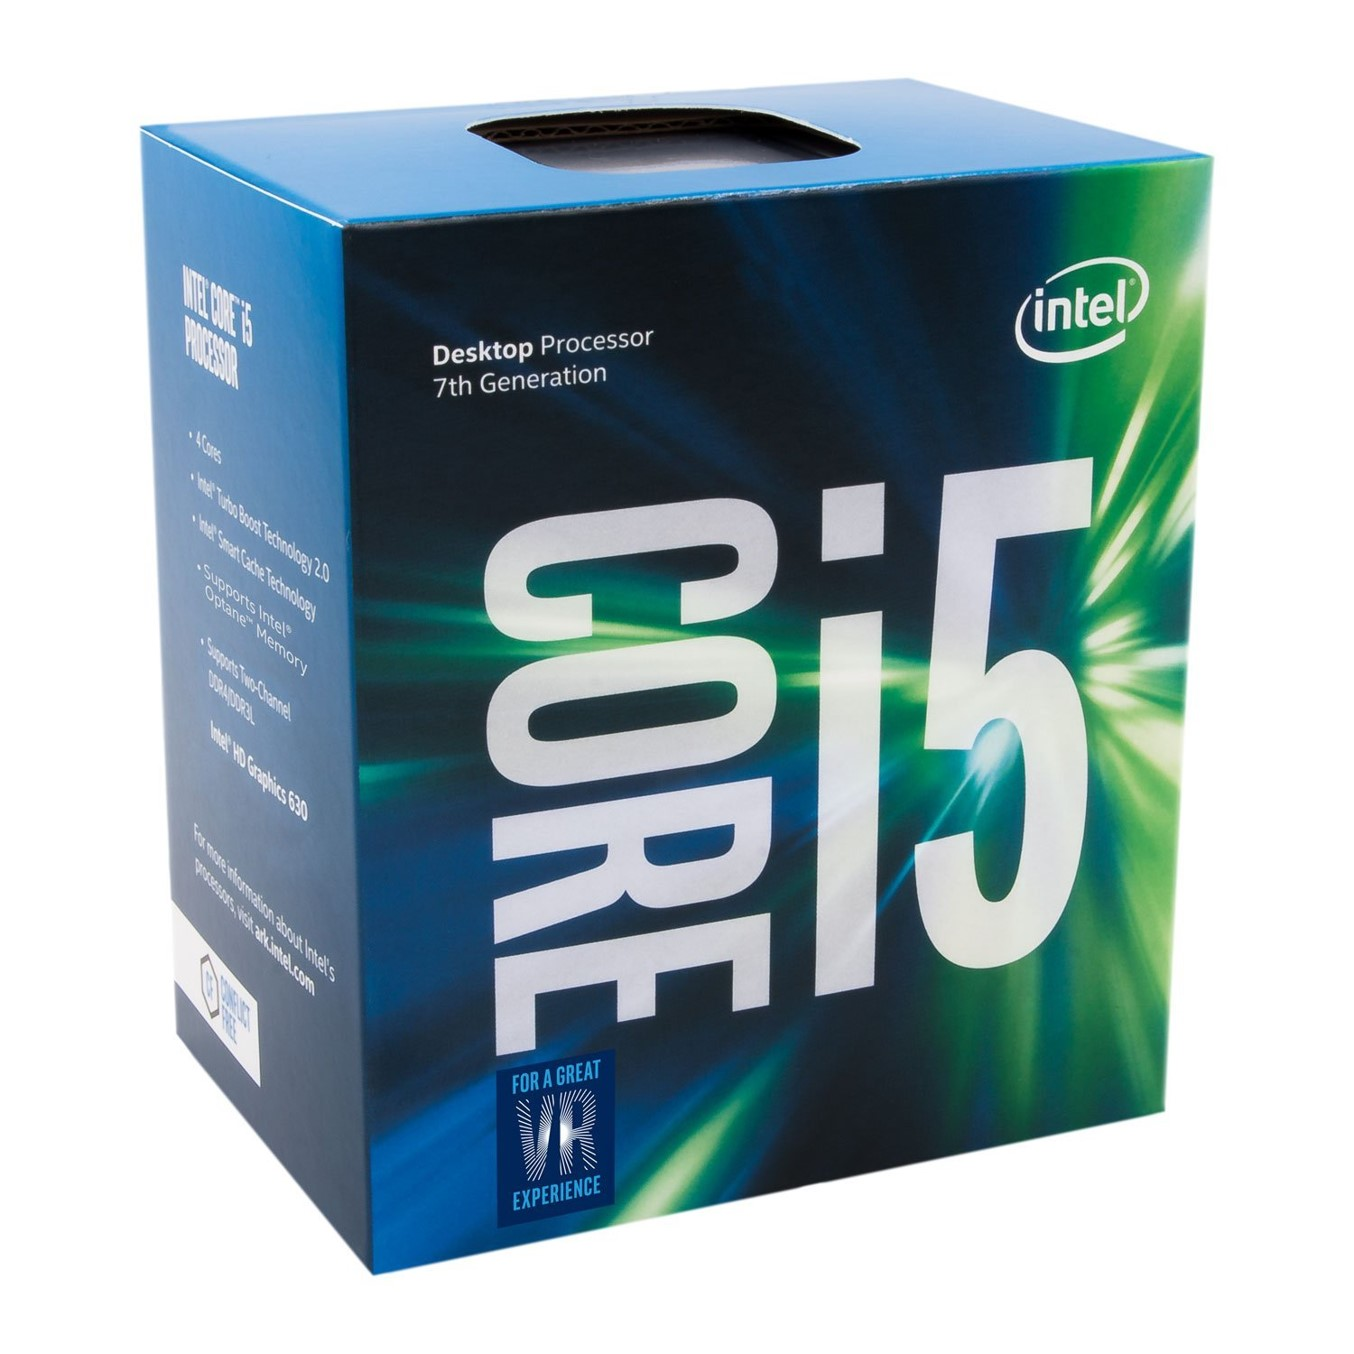 Micro-intel-i5-7500-lga1151-7-generacion-4-nucleos-3-4ghz-6m-in-box